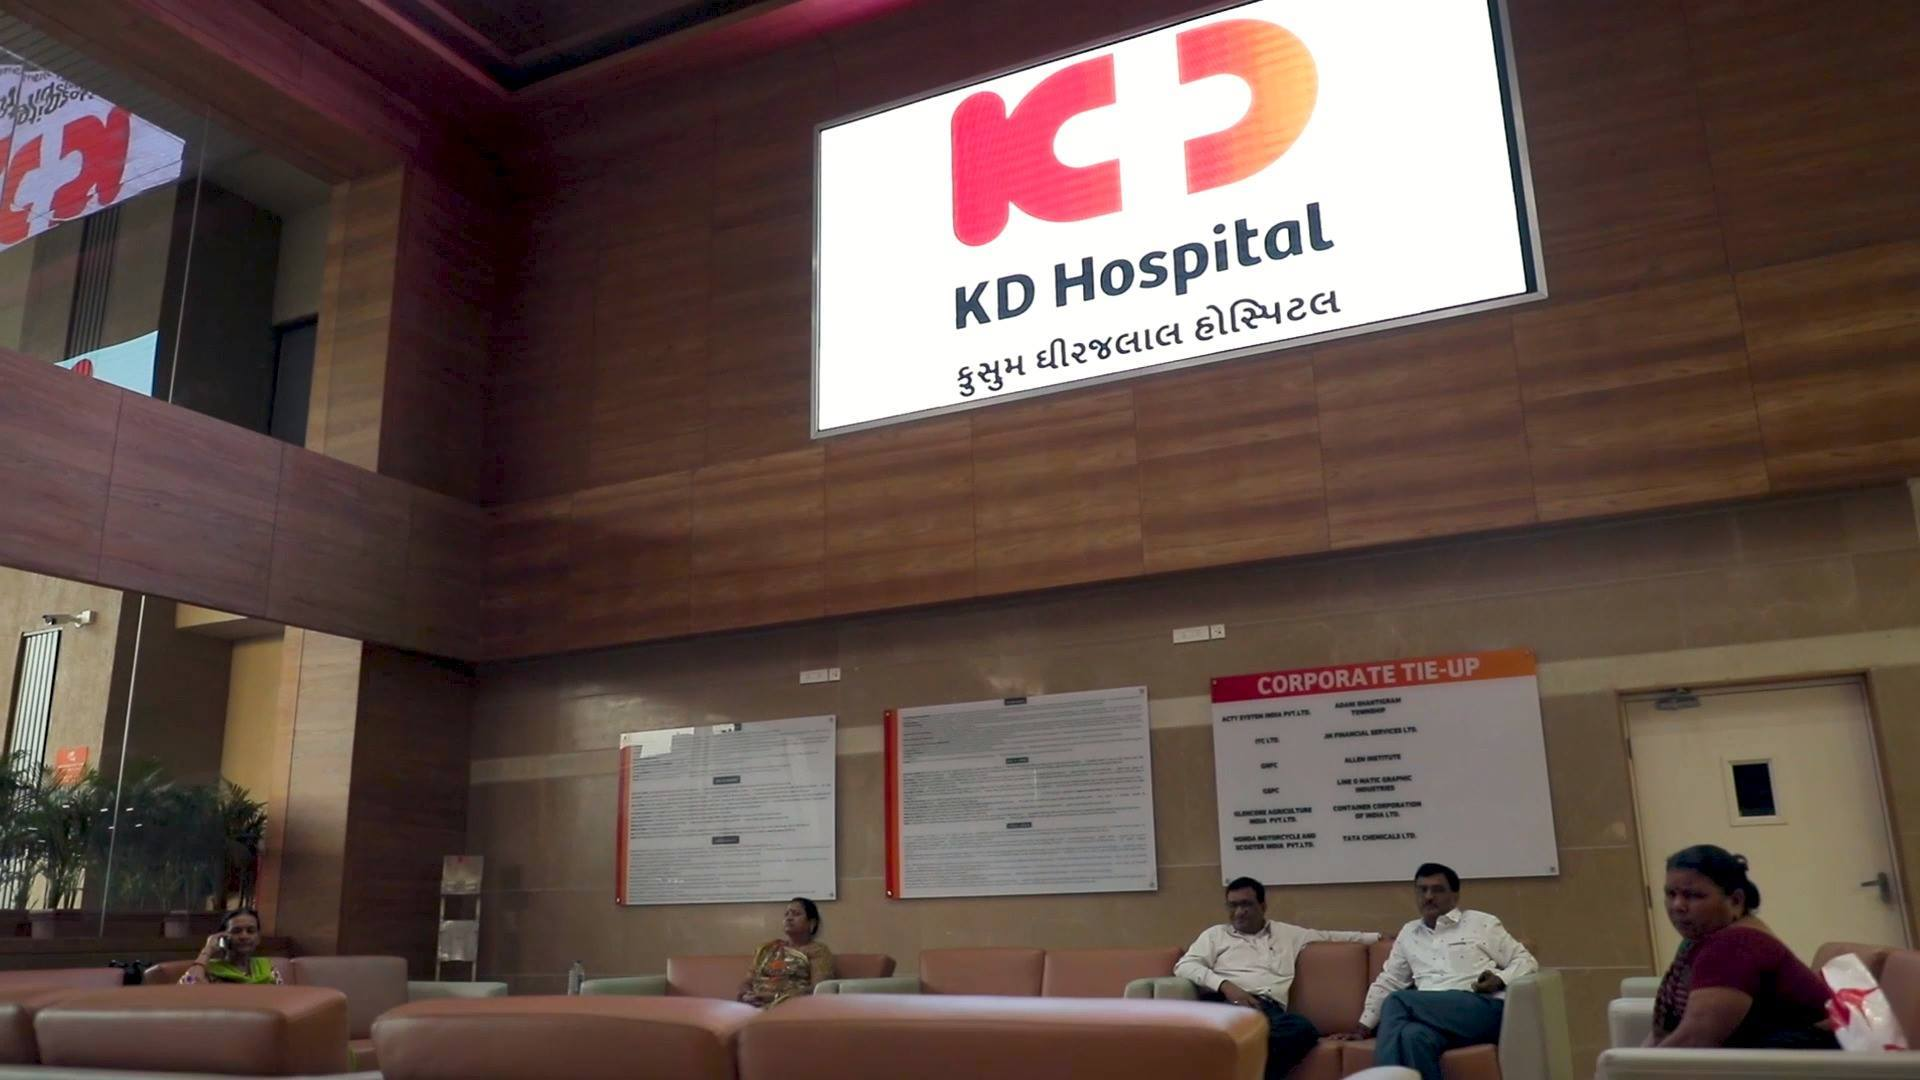 KD Hospital, Ahmedabad has state-of-the-art facilities & treatments at an affordable cost, encompassing a wide spectrum of accurate diagnostics and elegant therapeutics created on the philosophical edifice of the patient and ethical centricity ensuring humanistic dispensation.  #KDHospital #GoodHealth #Ahmedabad #Gujarat #India